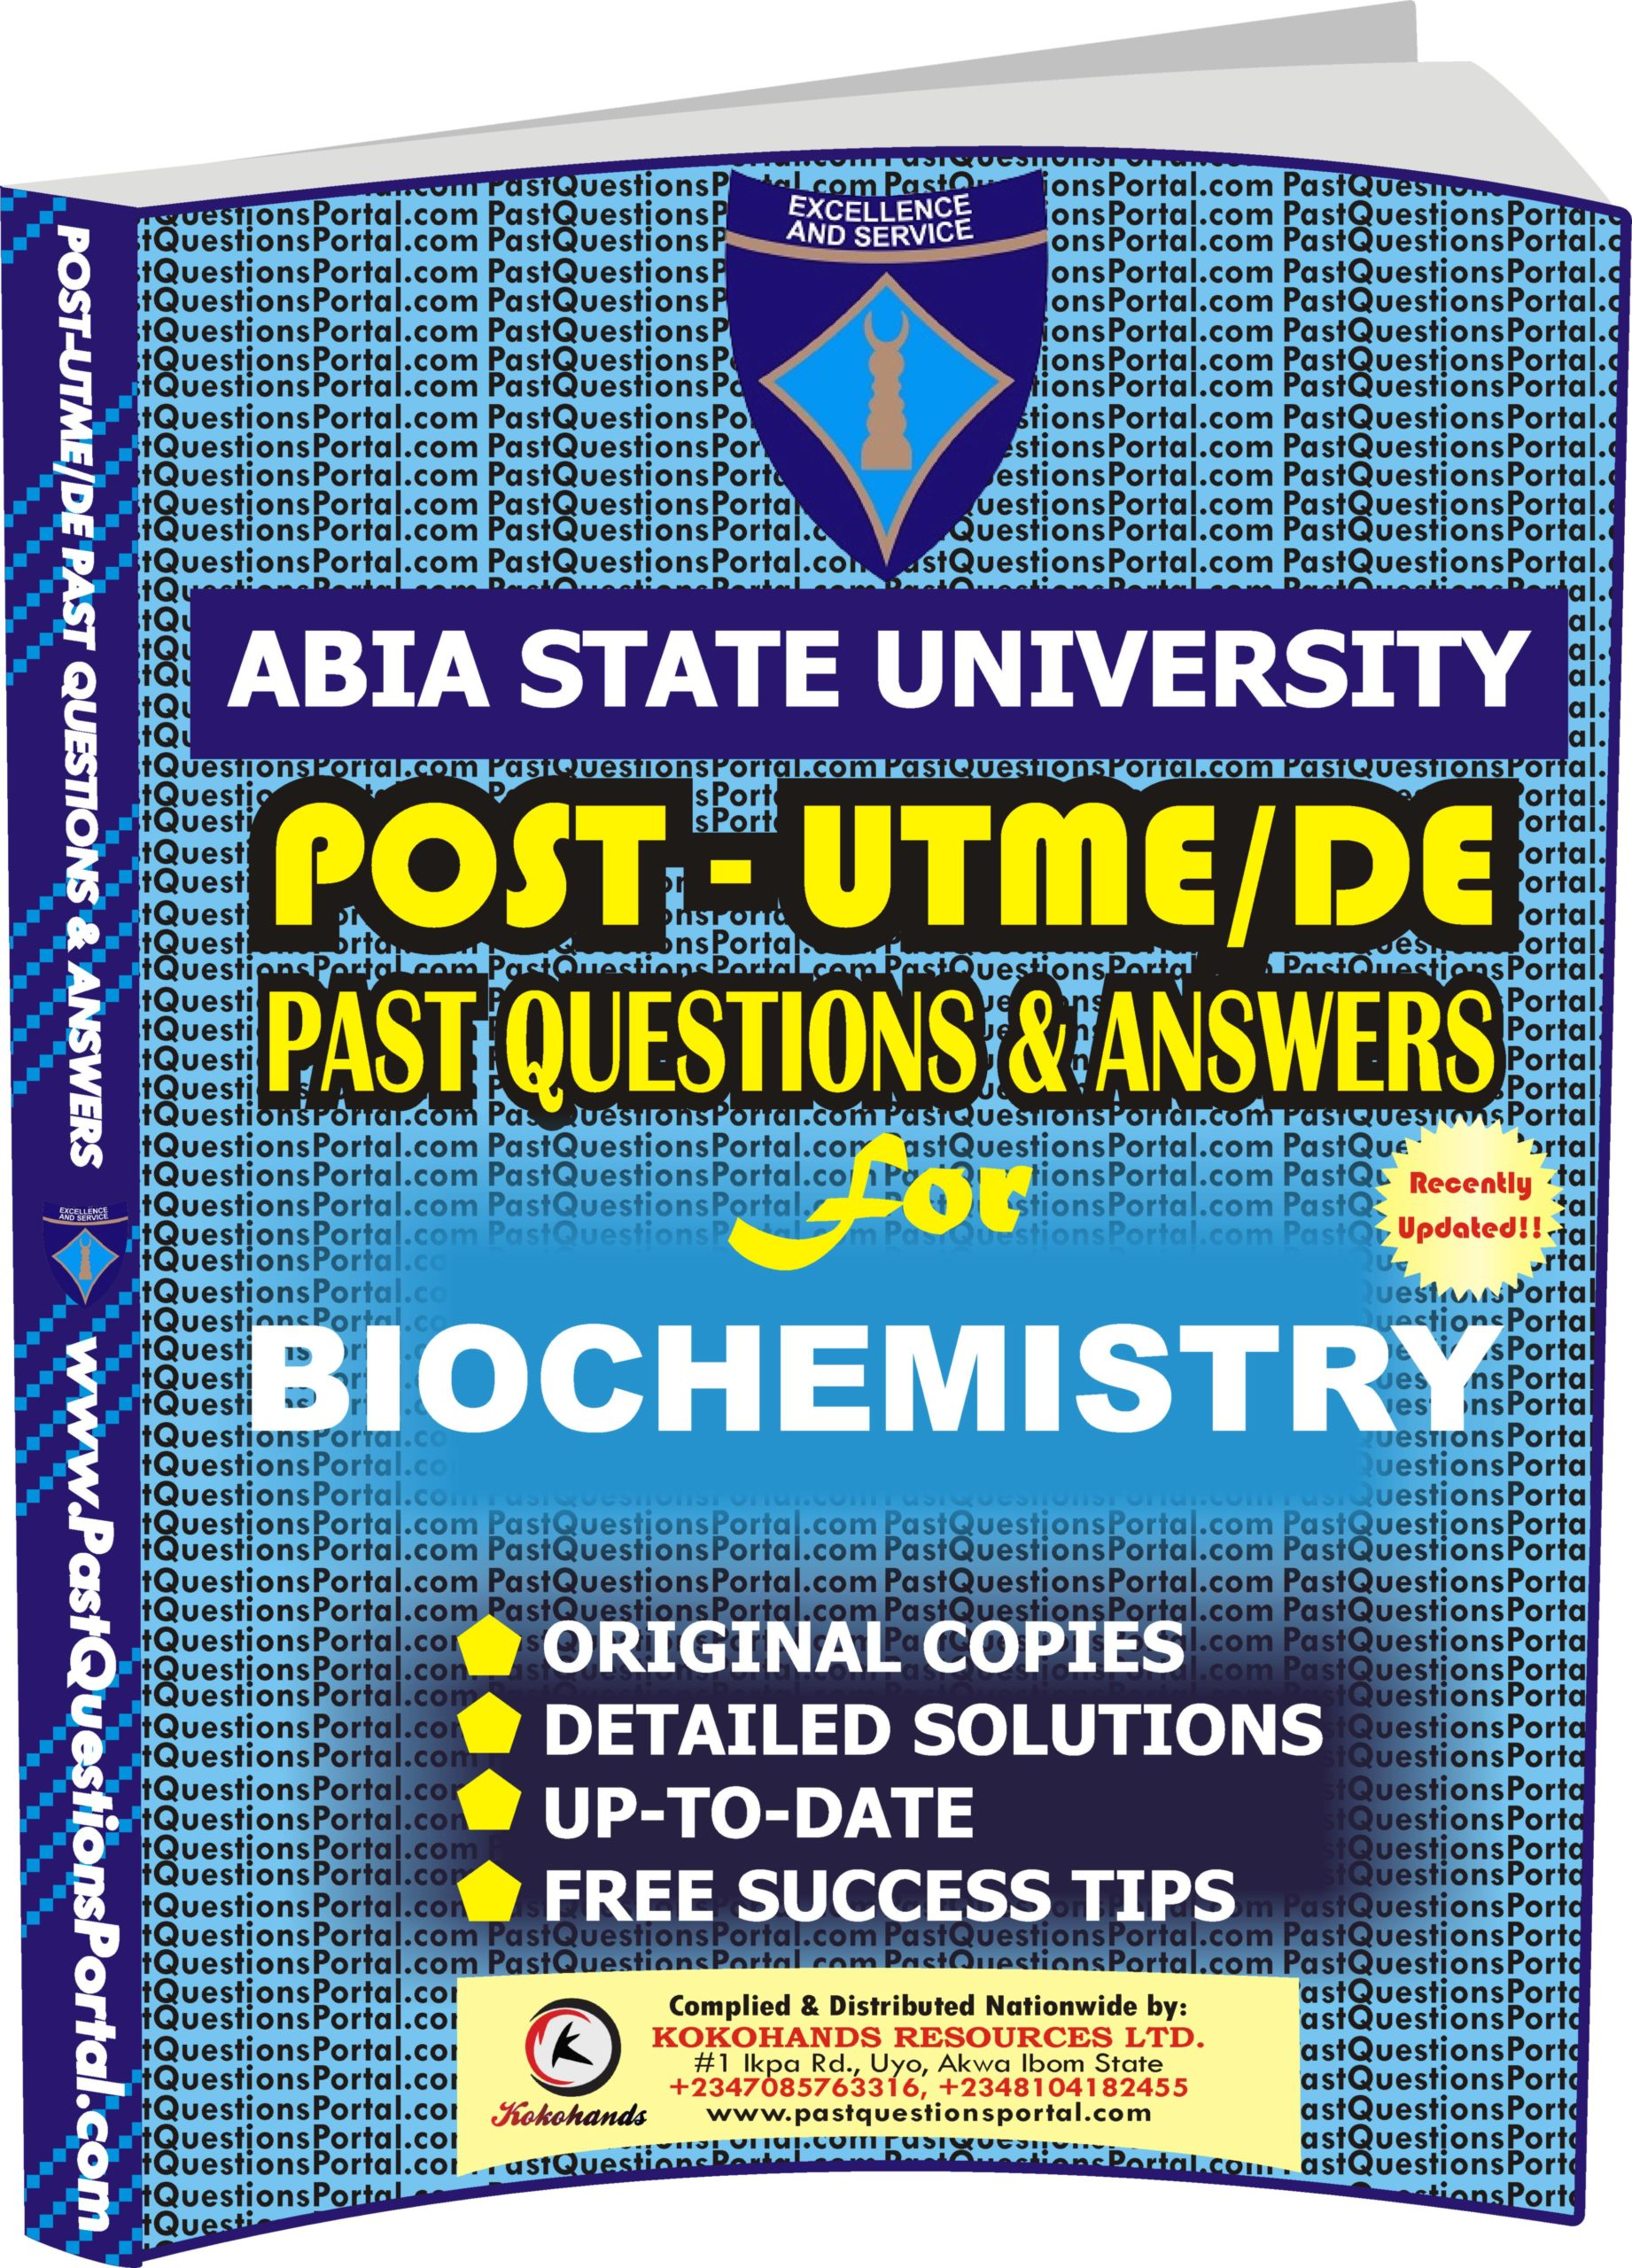 ABSU Post UTME Past Questions for BIOCHEMISTRY